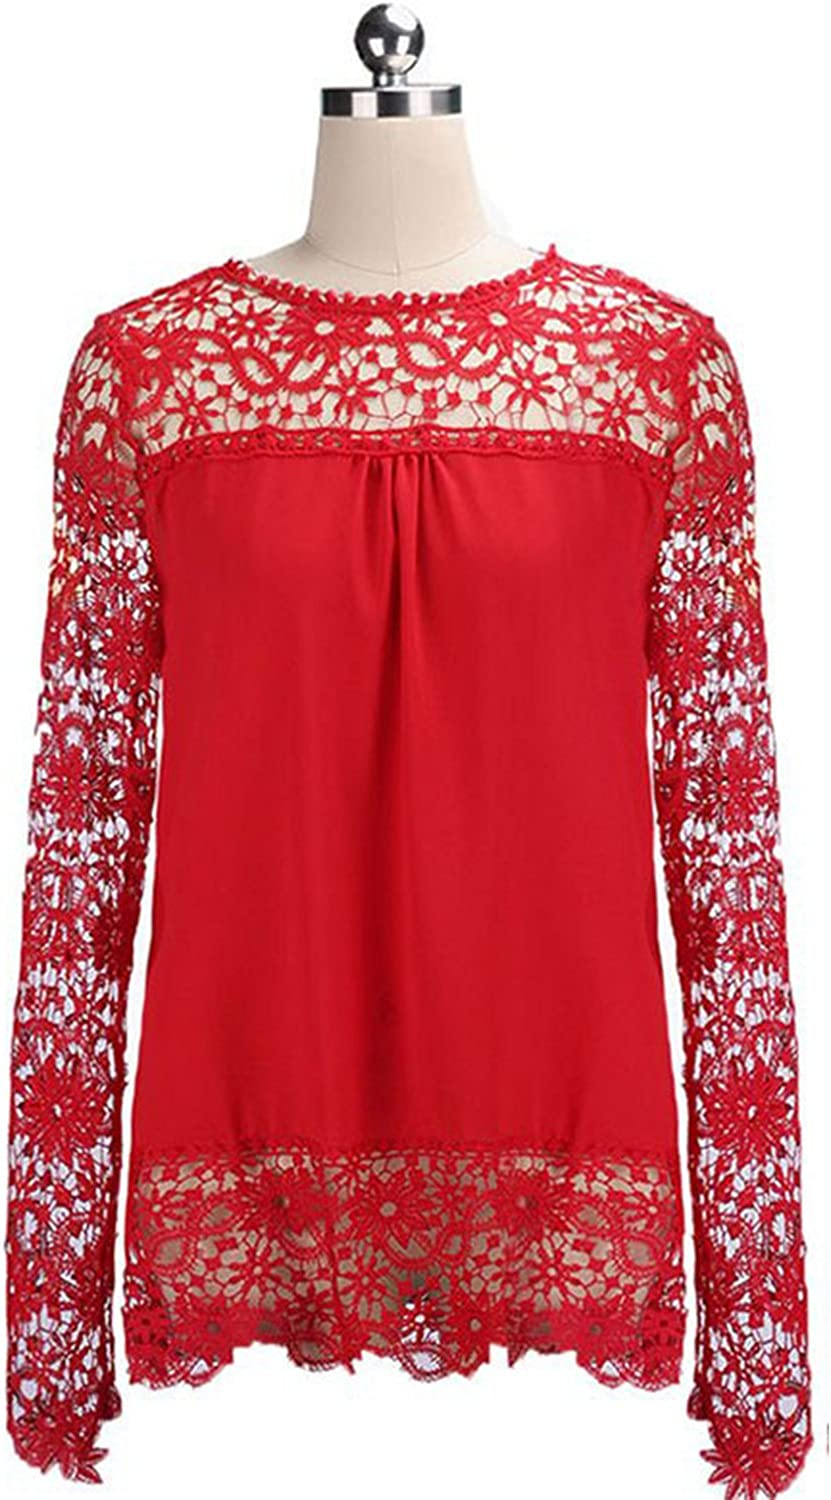 Unomatch Women Top Lace Decorated Loose Waist Shirt and Blouse Red